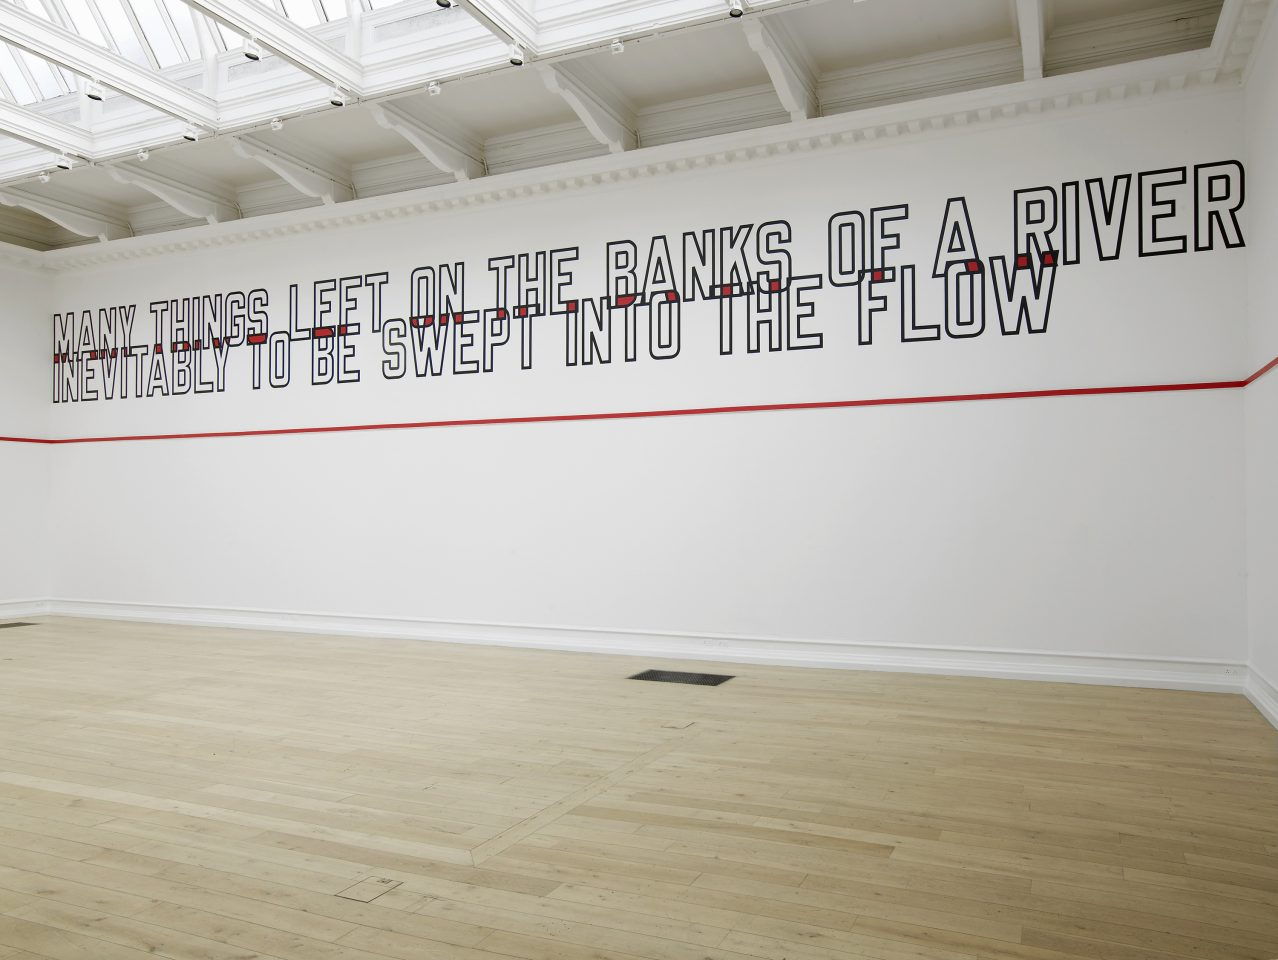 Installation view of Lawrence Weiner's ALL IN DUE COURSE, 2014. Courtesy of Lawrence Weiner (c) ARS, NY and DACS, London 2014. Photos: Andy Keate.